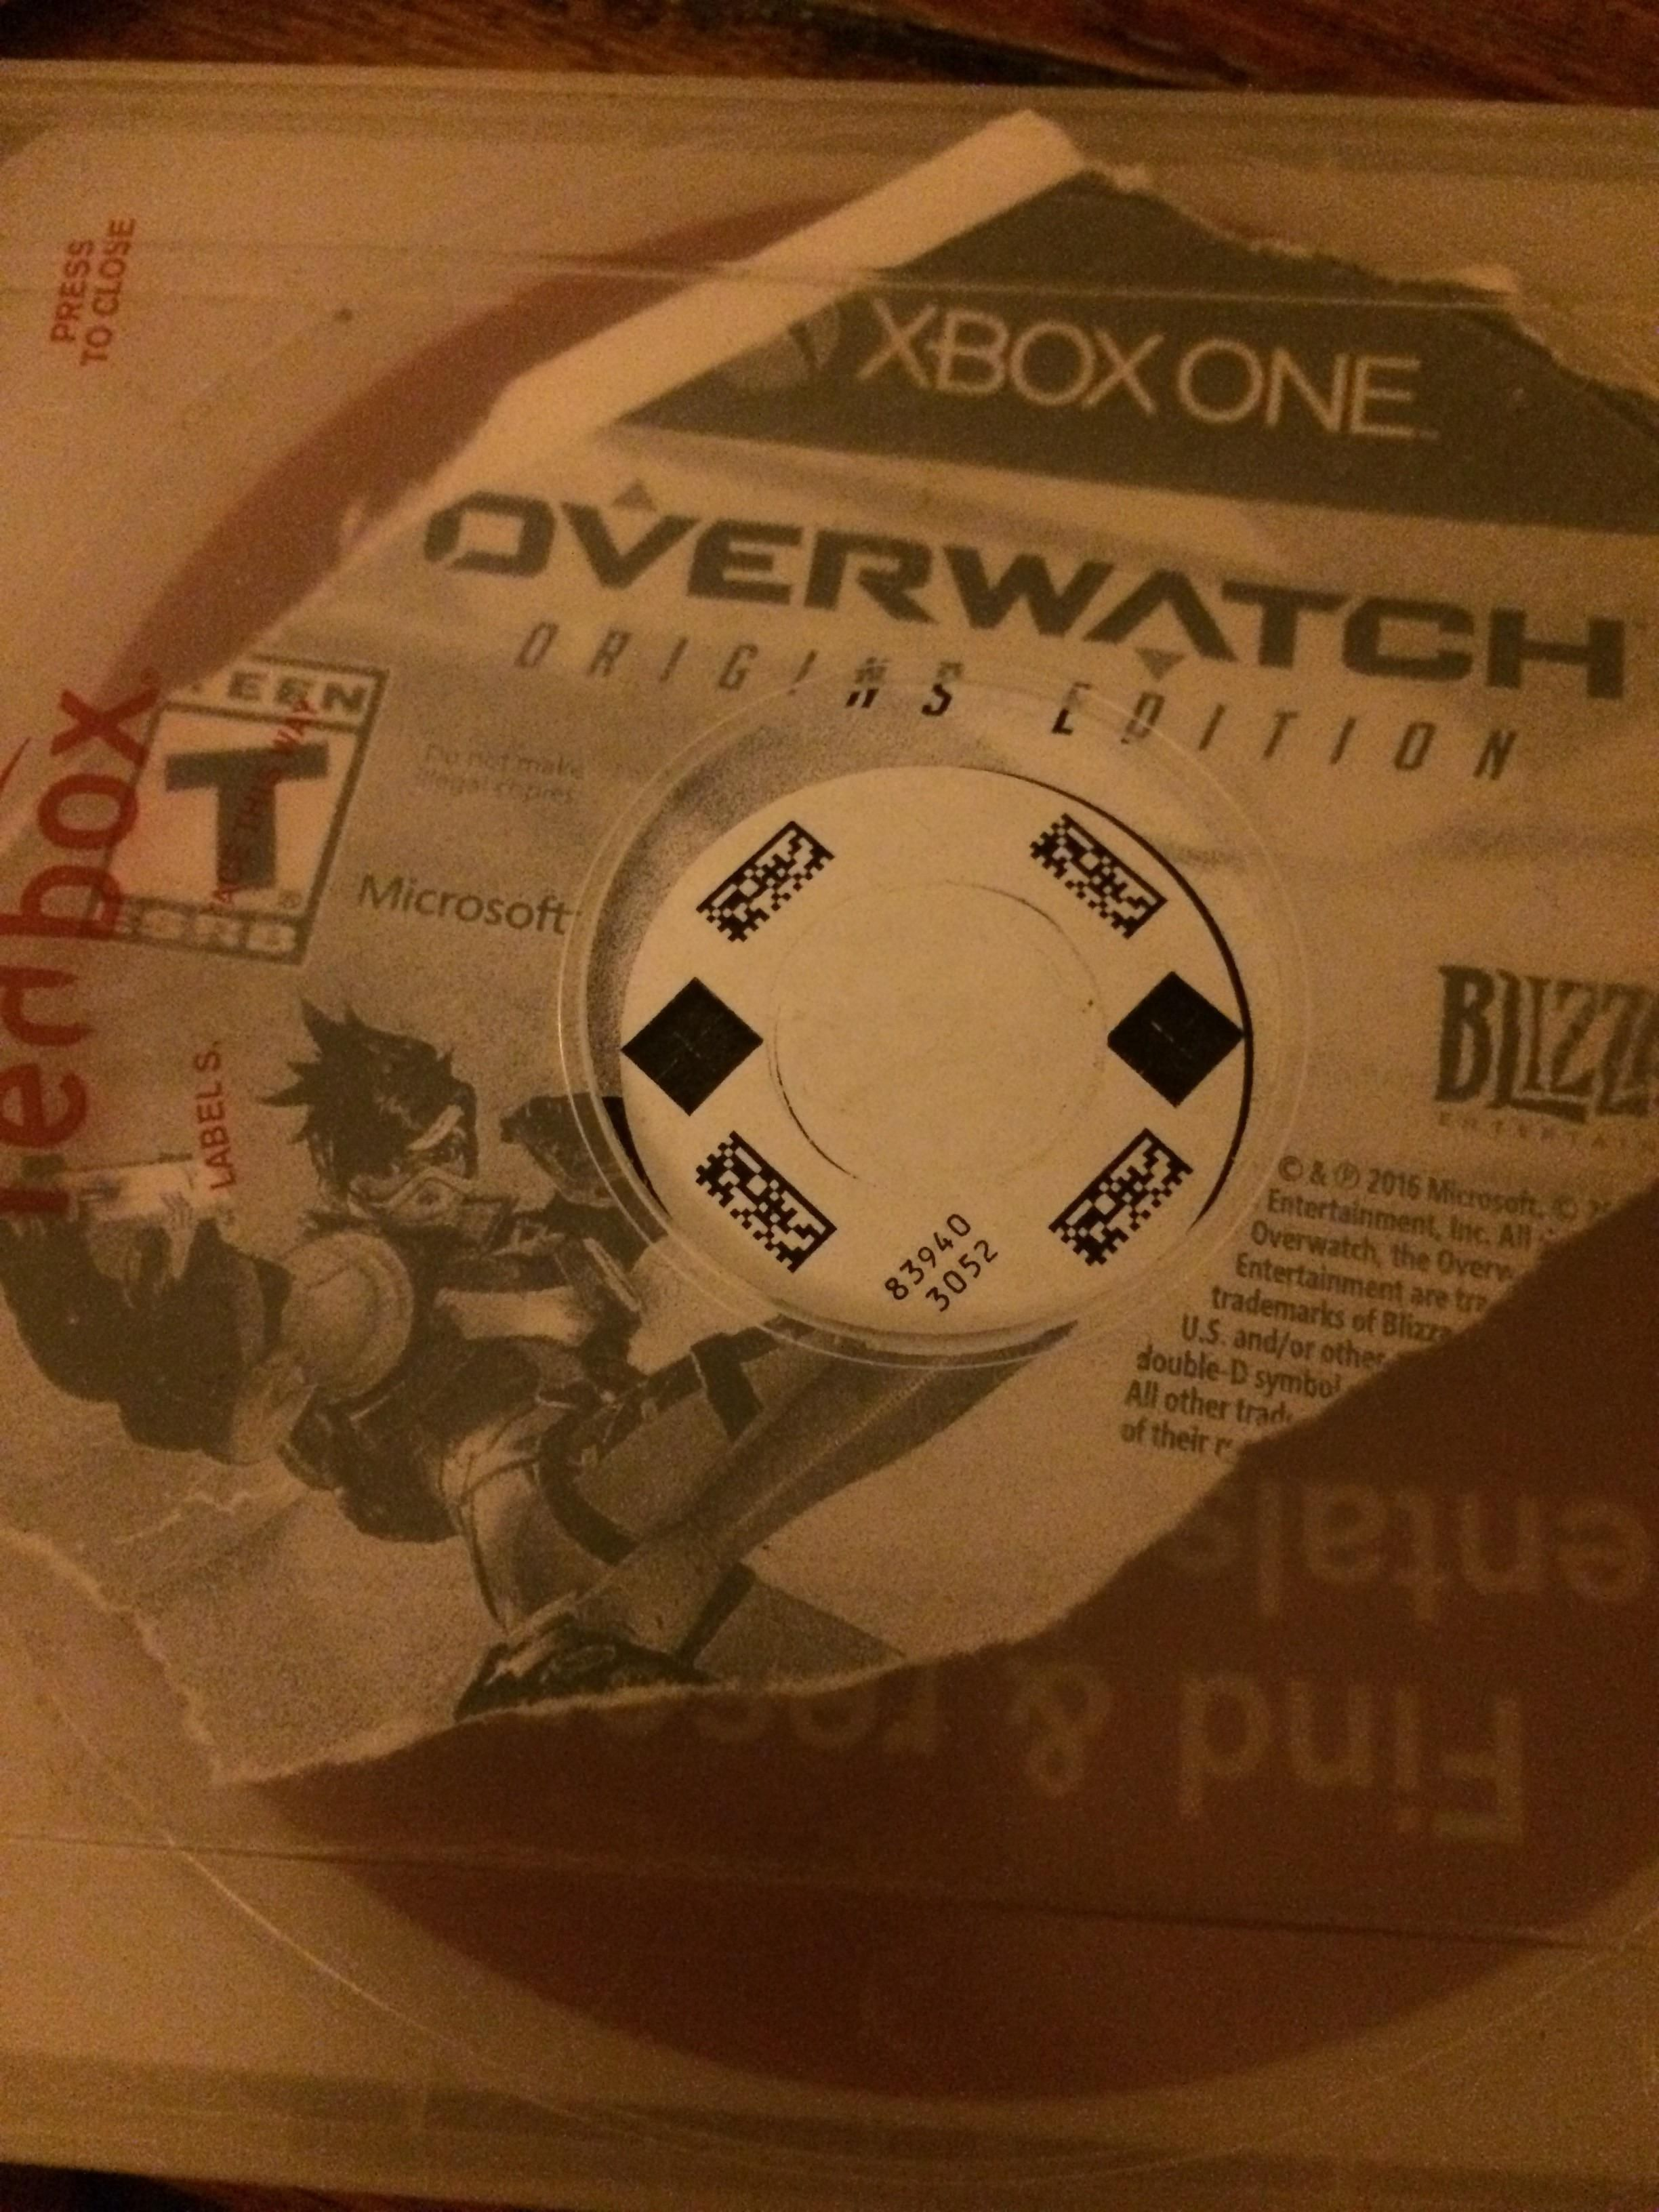 rented overwatch yesterday from redbox and it was just a photocopy